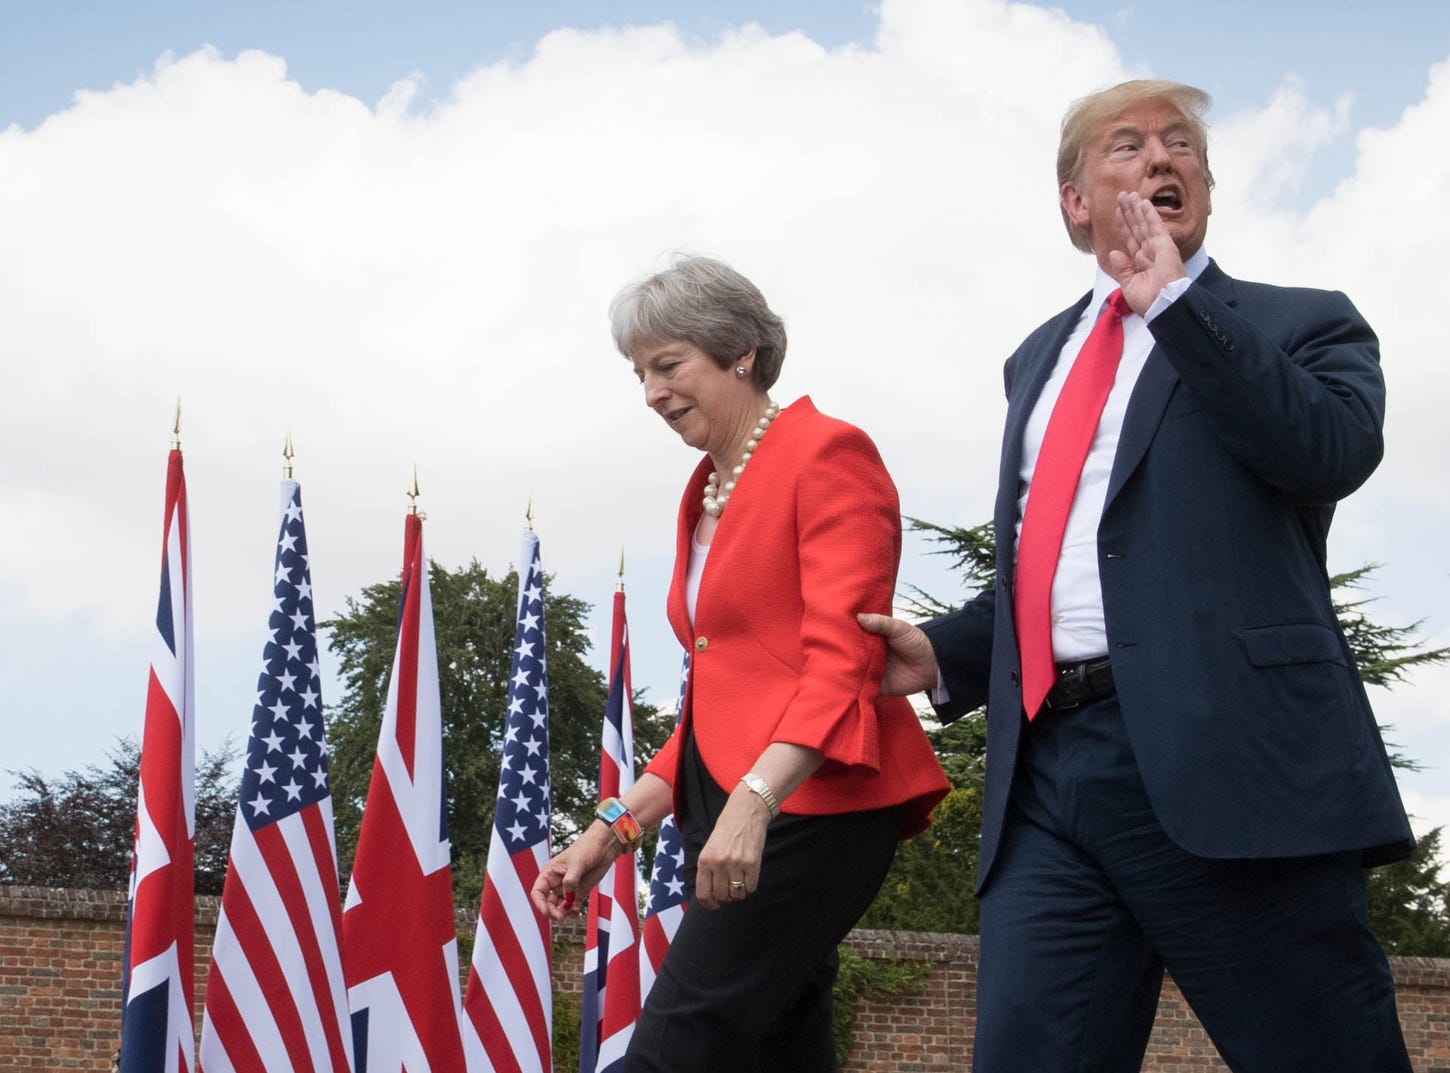 President Trump and Britain's Prime Minister Theresa May approach the lecturns for a joint press conference following their meeting at Chequers, the prime minister's country residence, near Ellesborough, northwest of London on July 13, 2018.